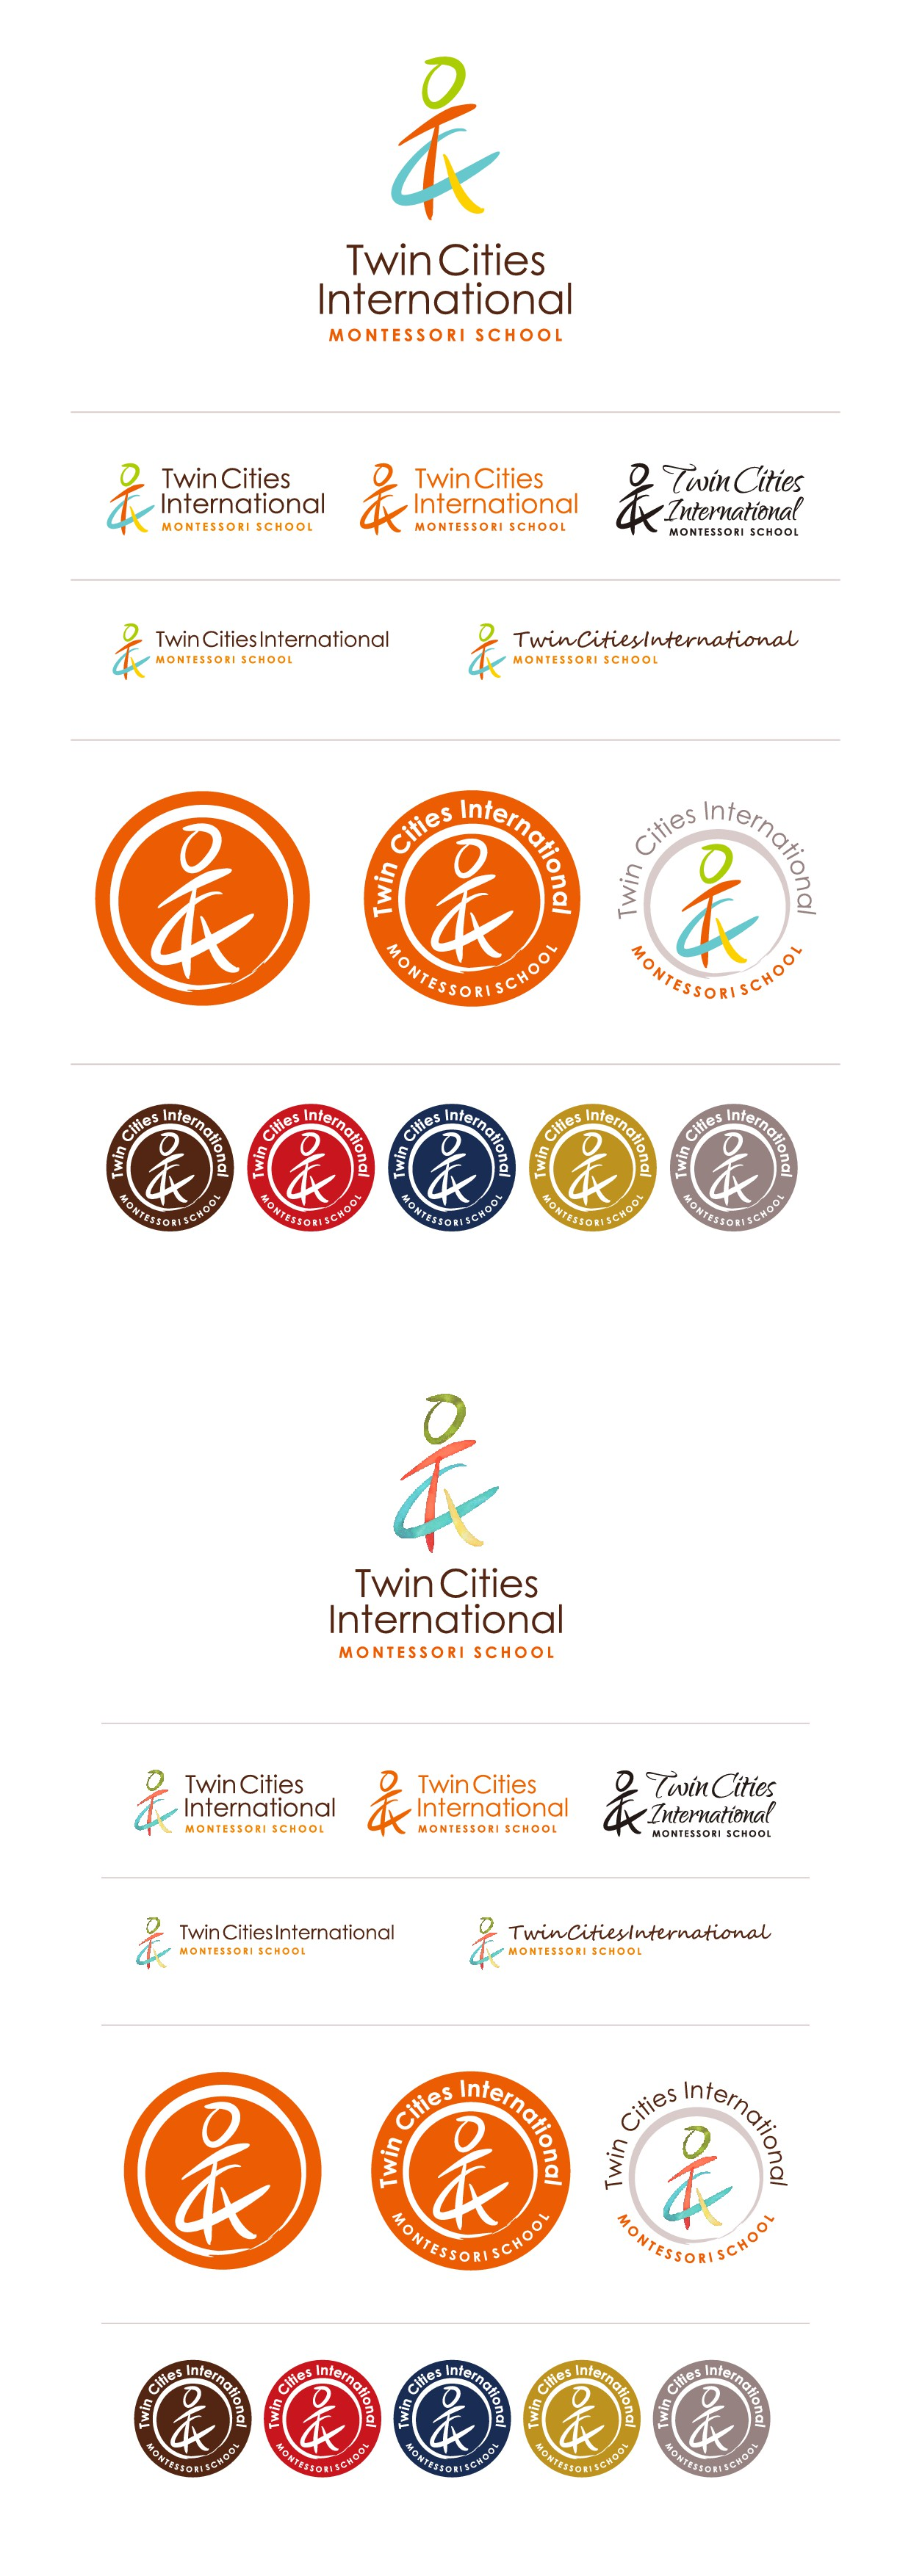 Create a beautiful logo for new bilingual (English and Mandarin) Montessori school